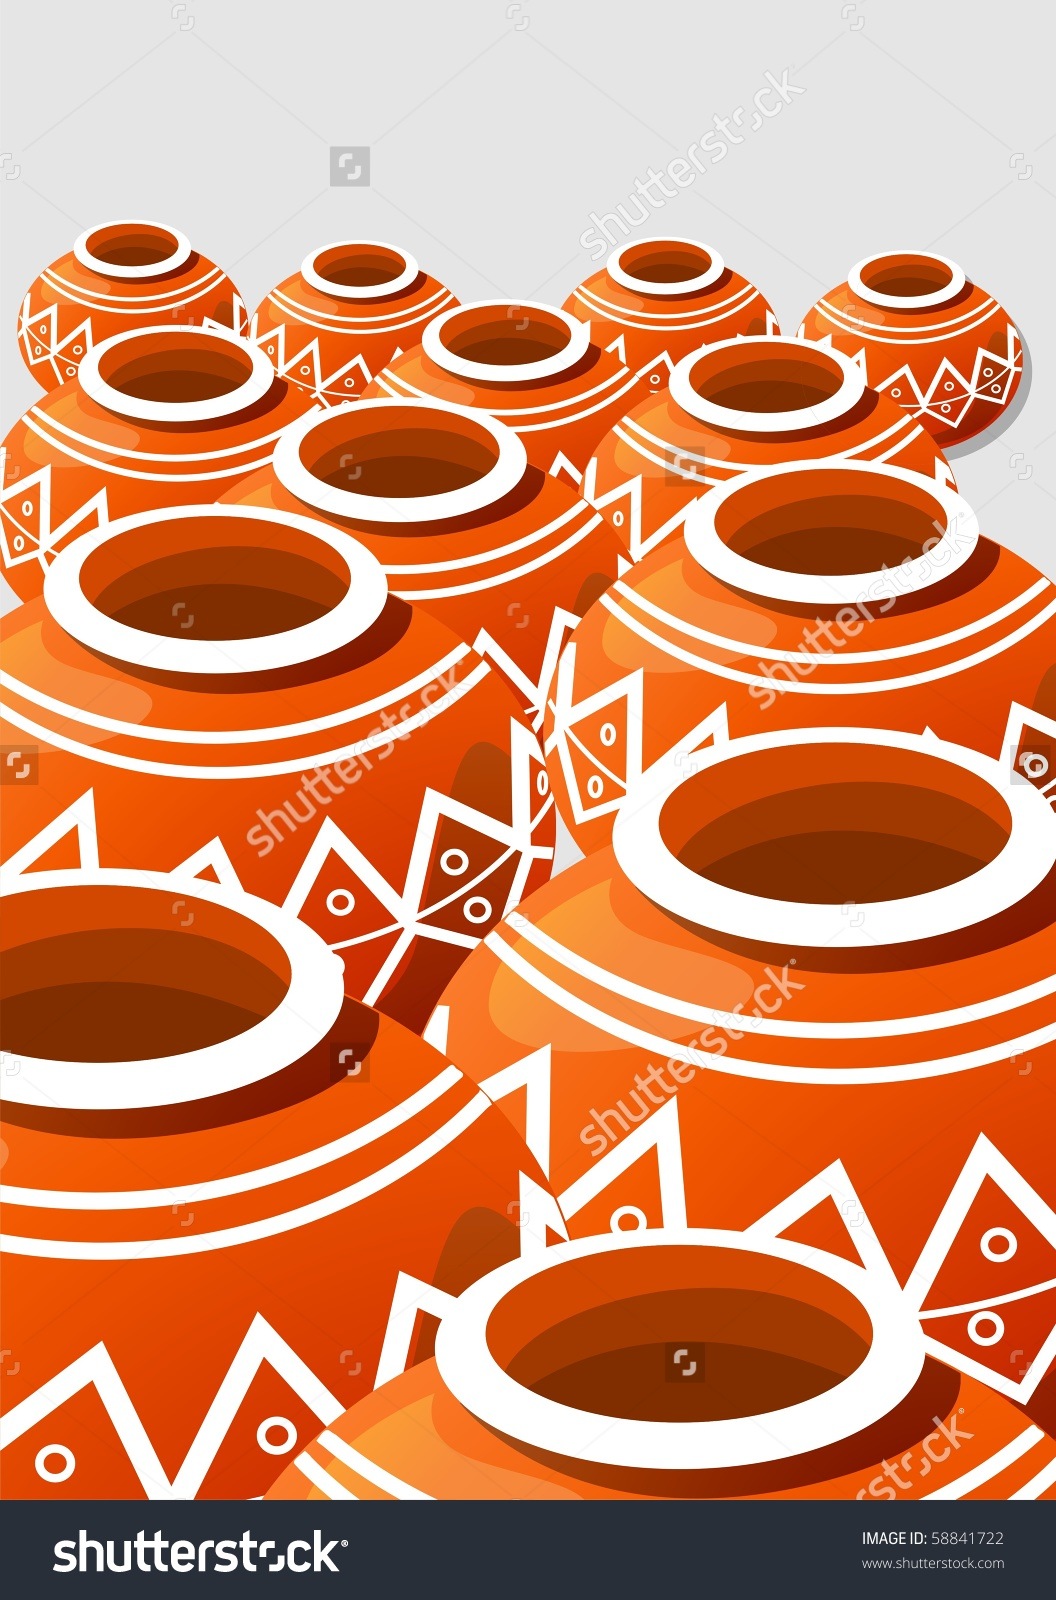 Illustration Of Earthen Pot With Design Work.